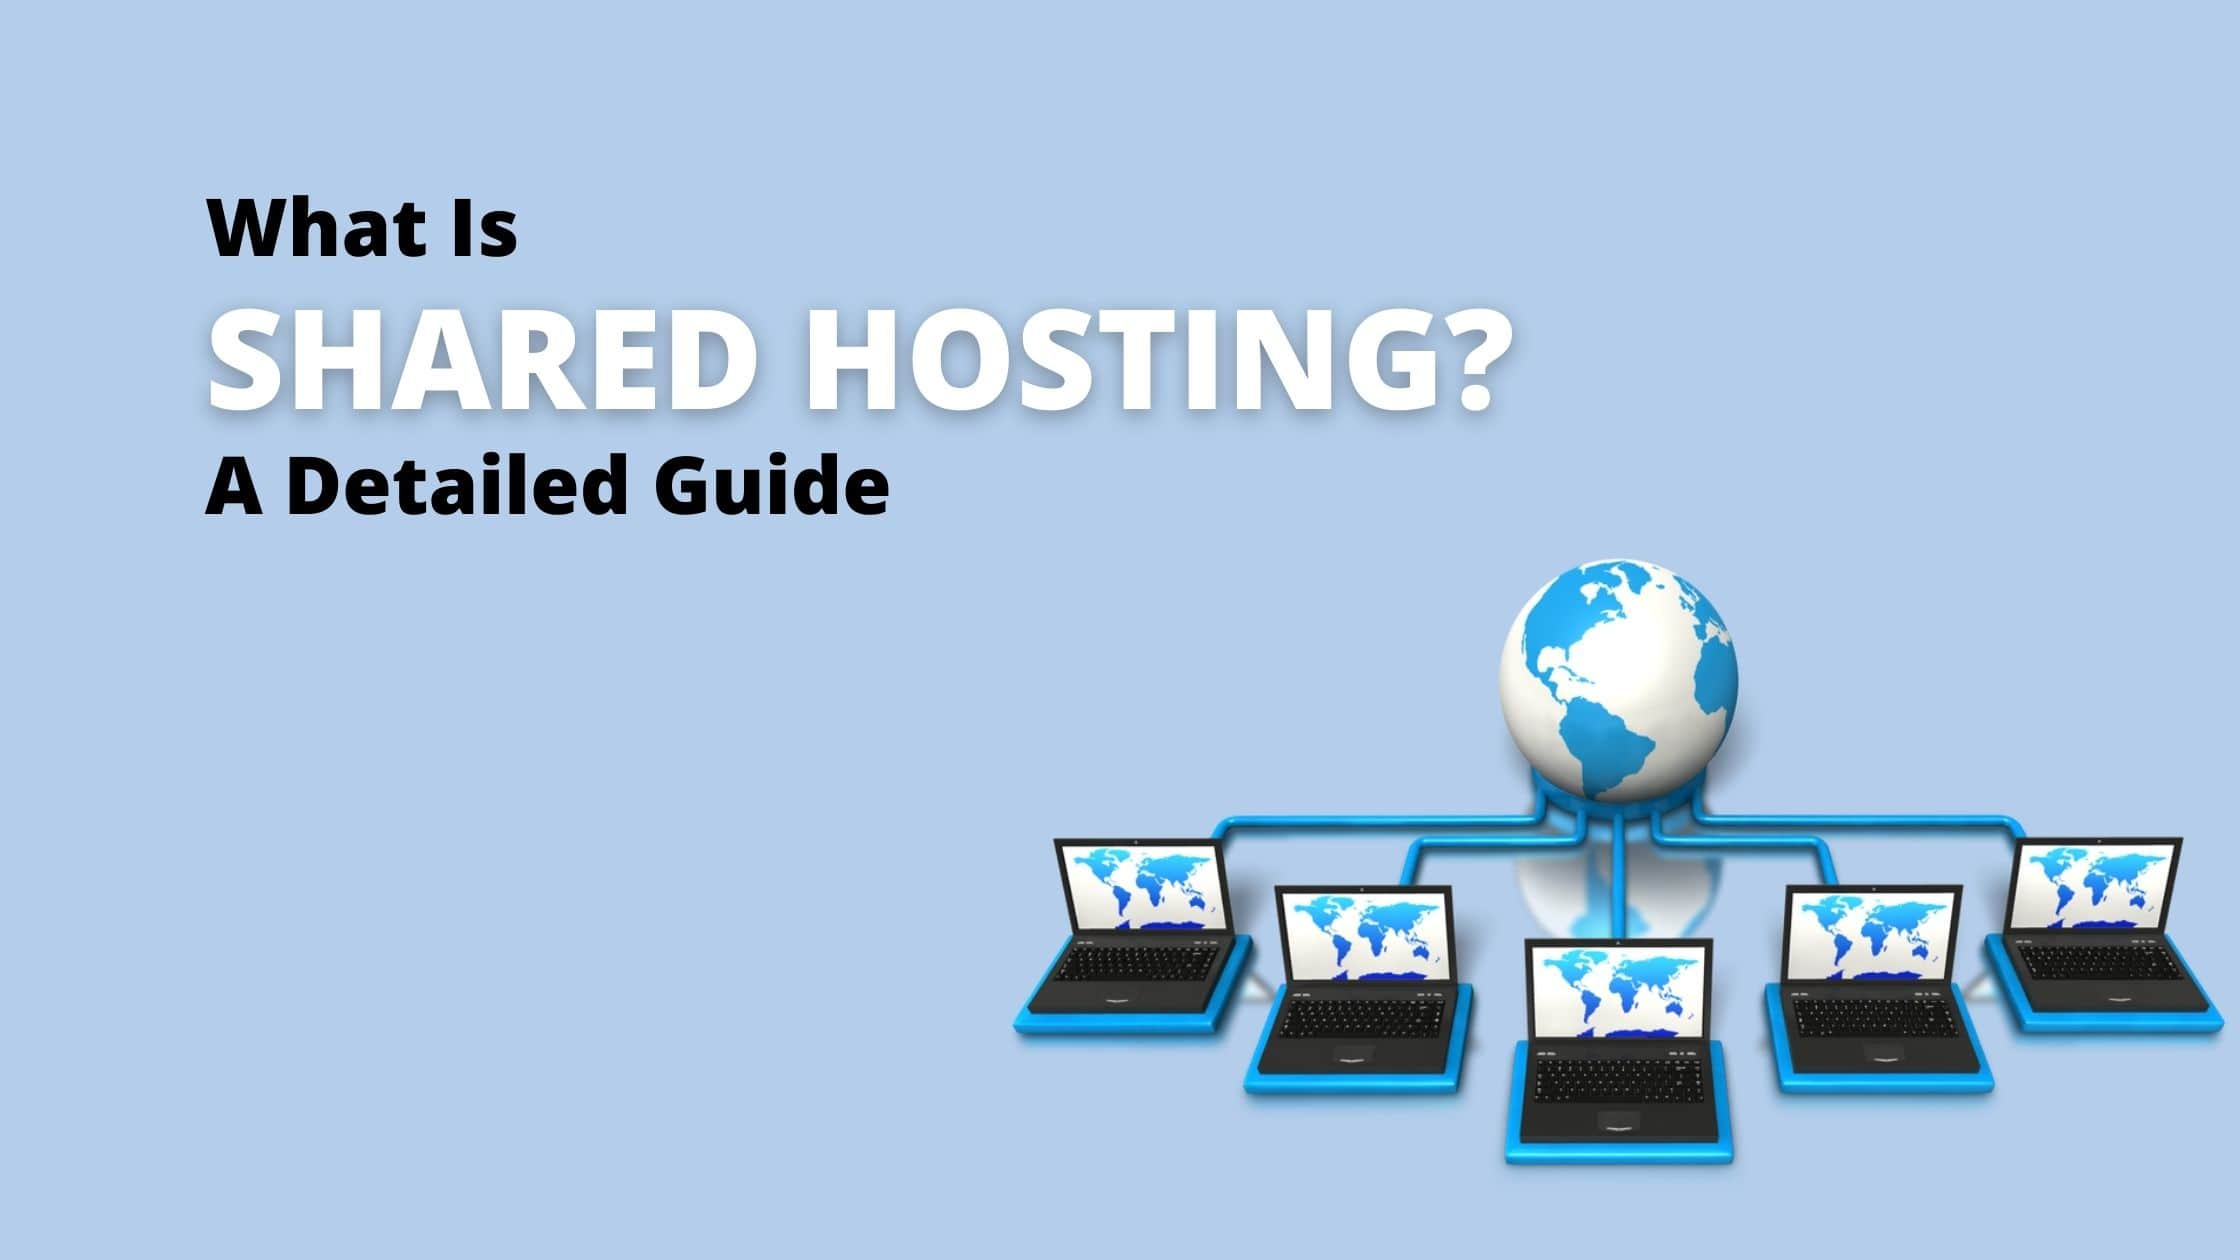 What Is Shared Hosting: A Detailed Guide